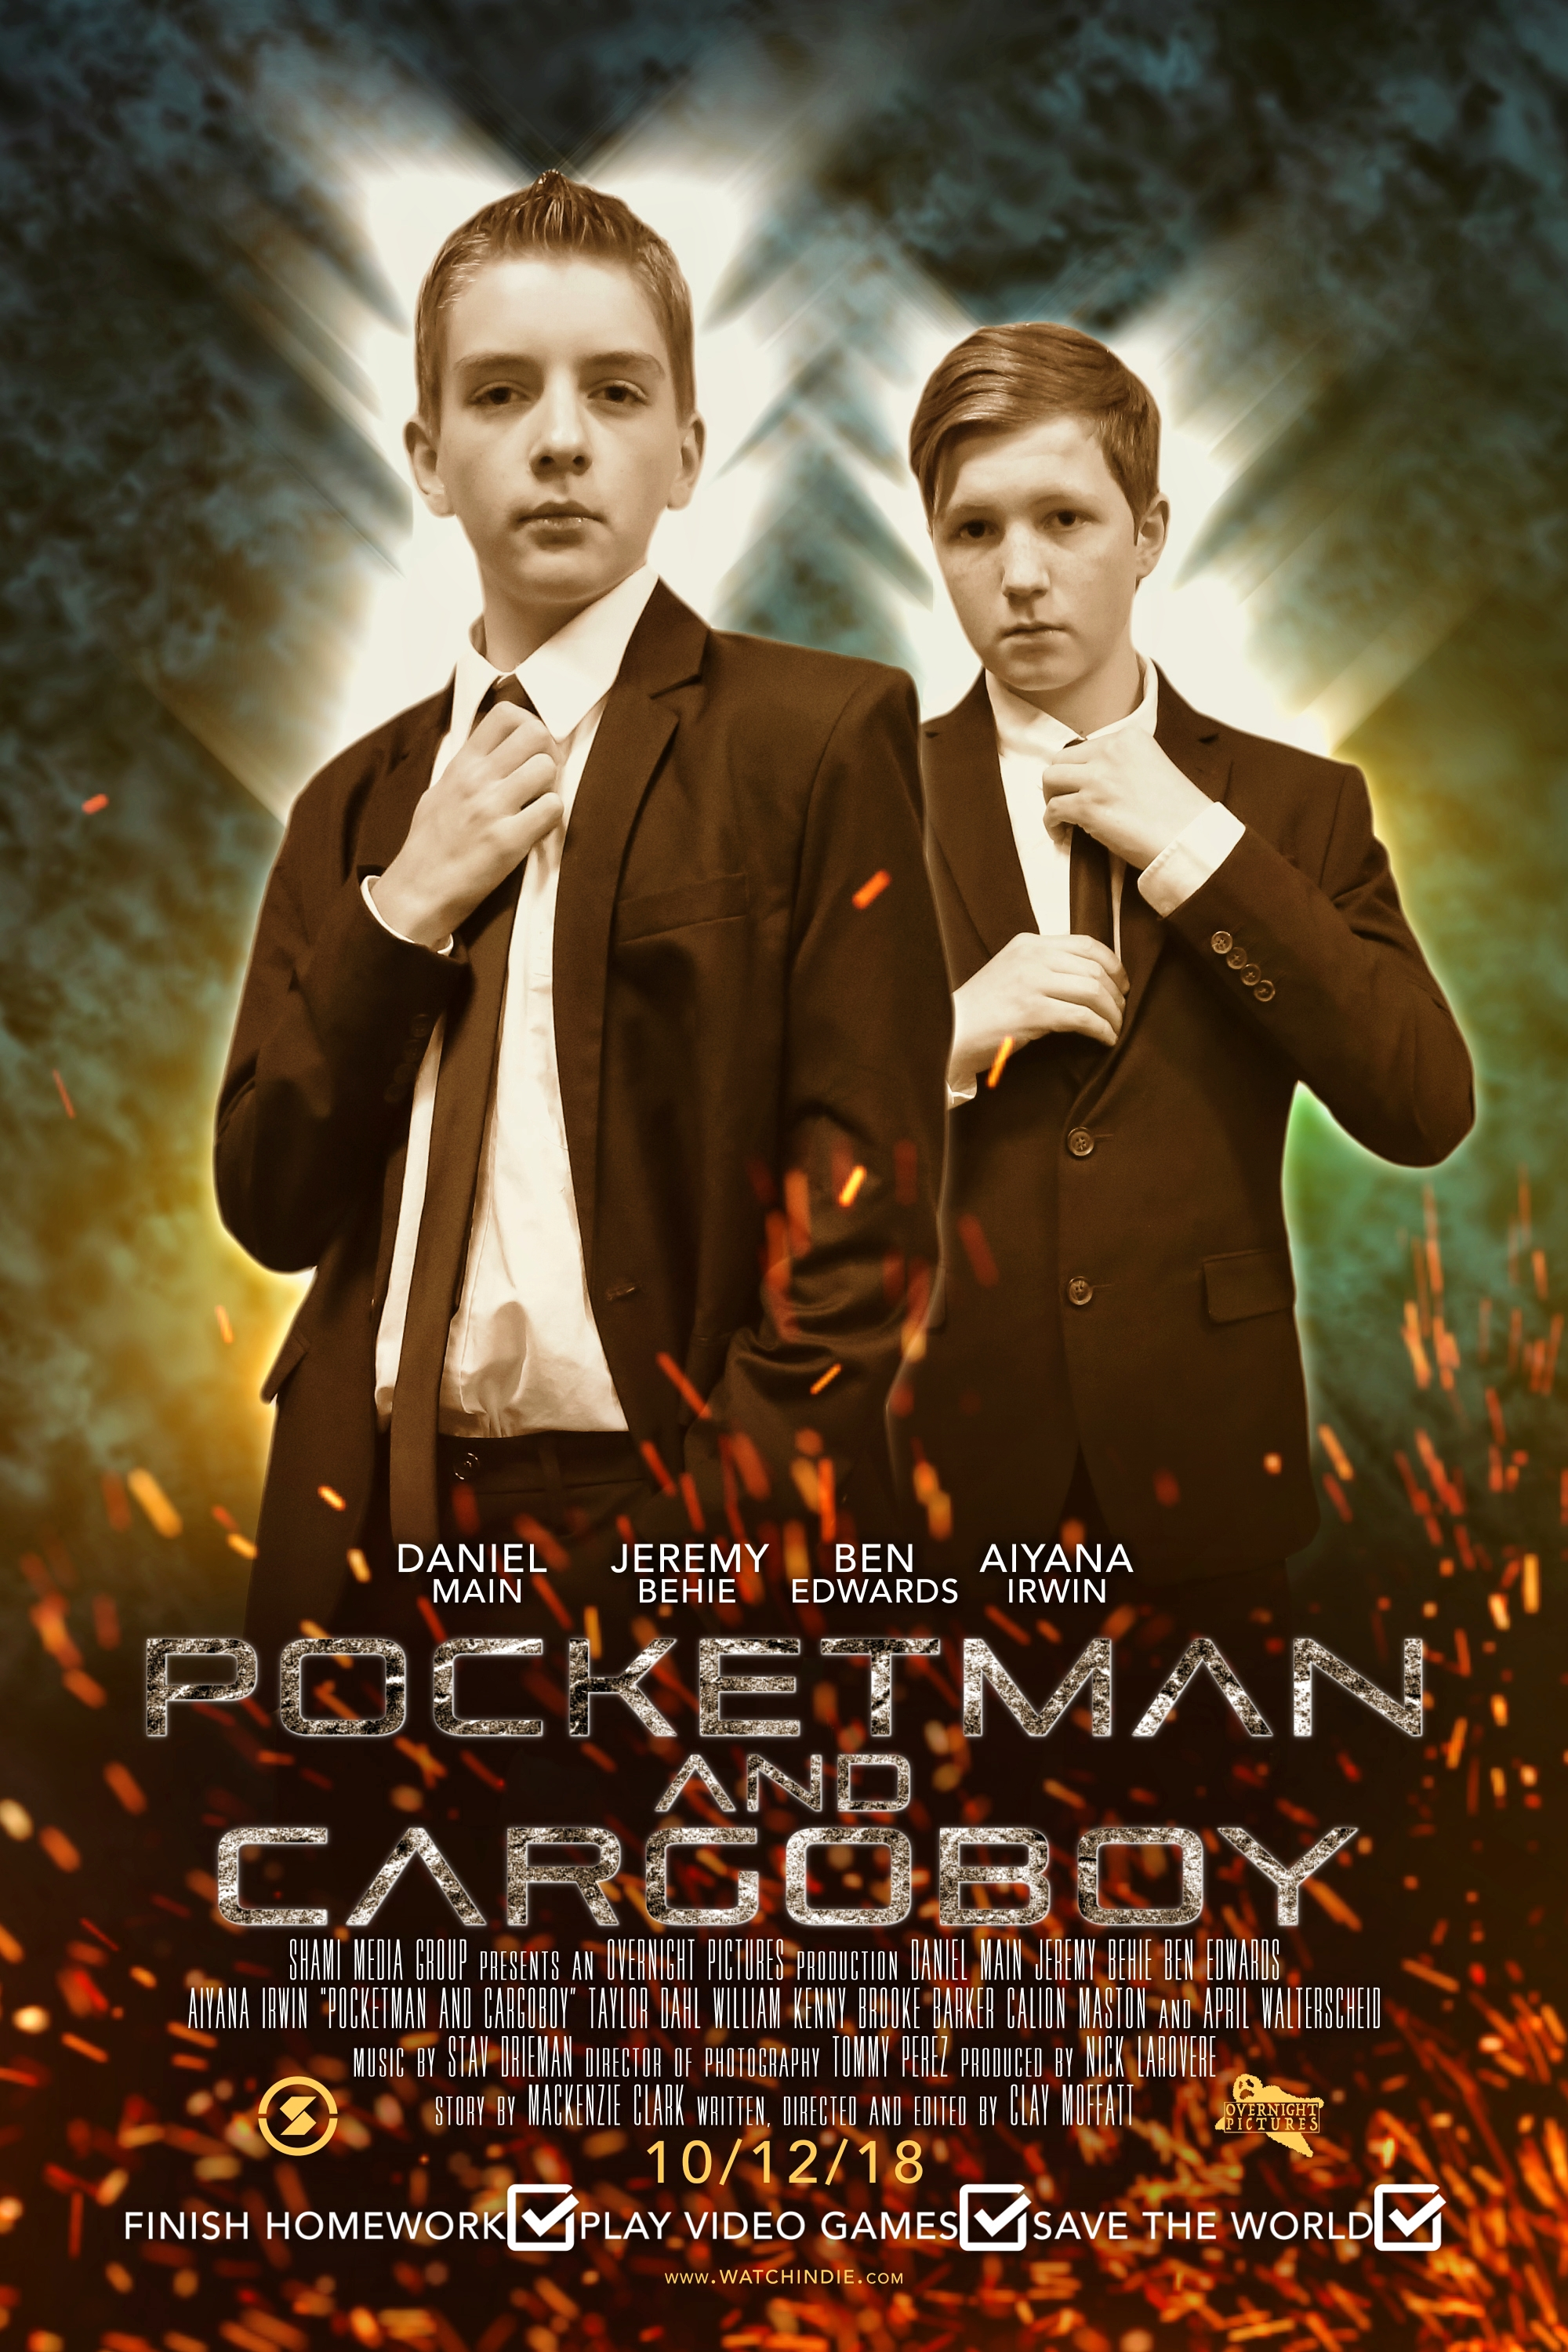 Pocketman And Cargo Boy 2018 Review